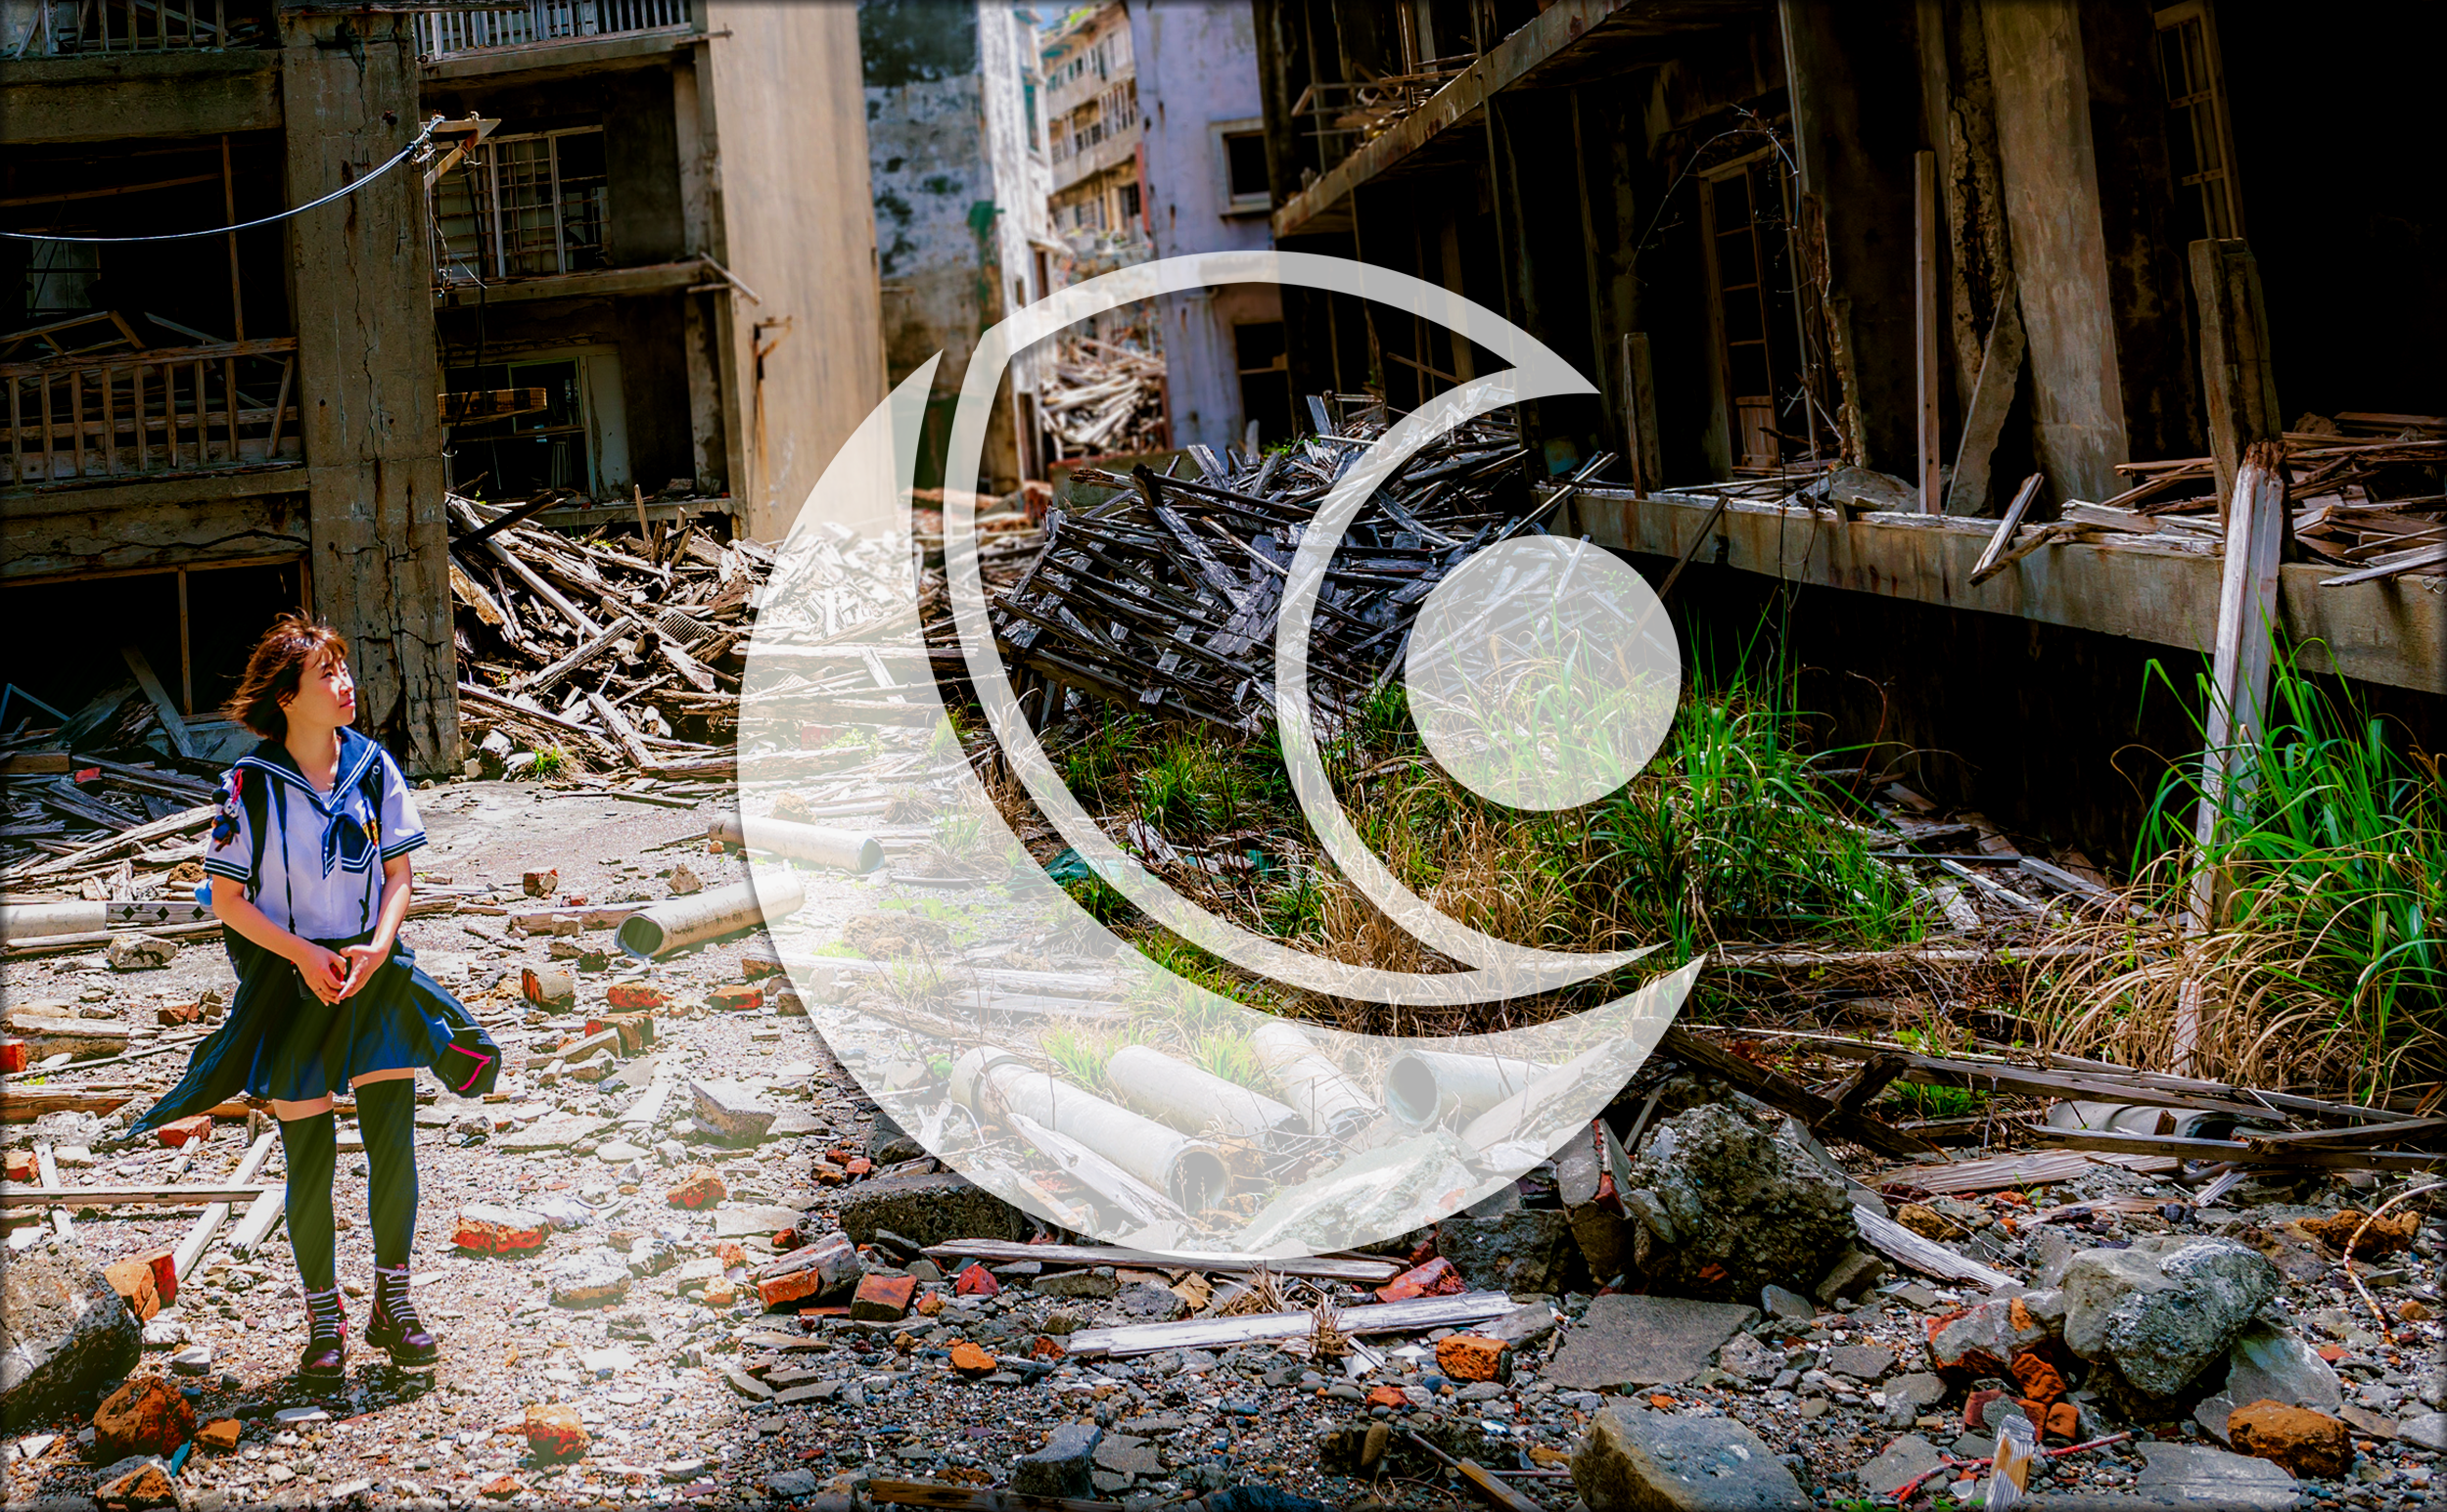 Resiliants - We have been rocked by a planet-sized disaster. Now you and your community must help rebuild civilization from the rubble, one step at a time.Combat humanity's darker nature in the game world as you earn powers by getting fit in this world.